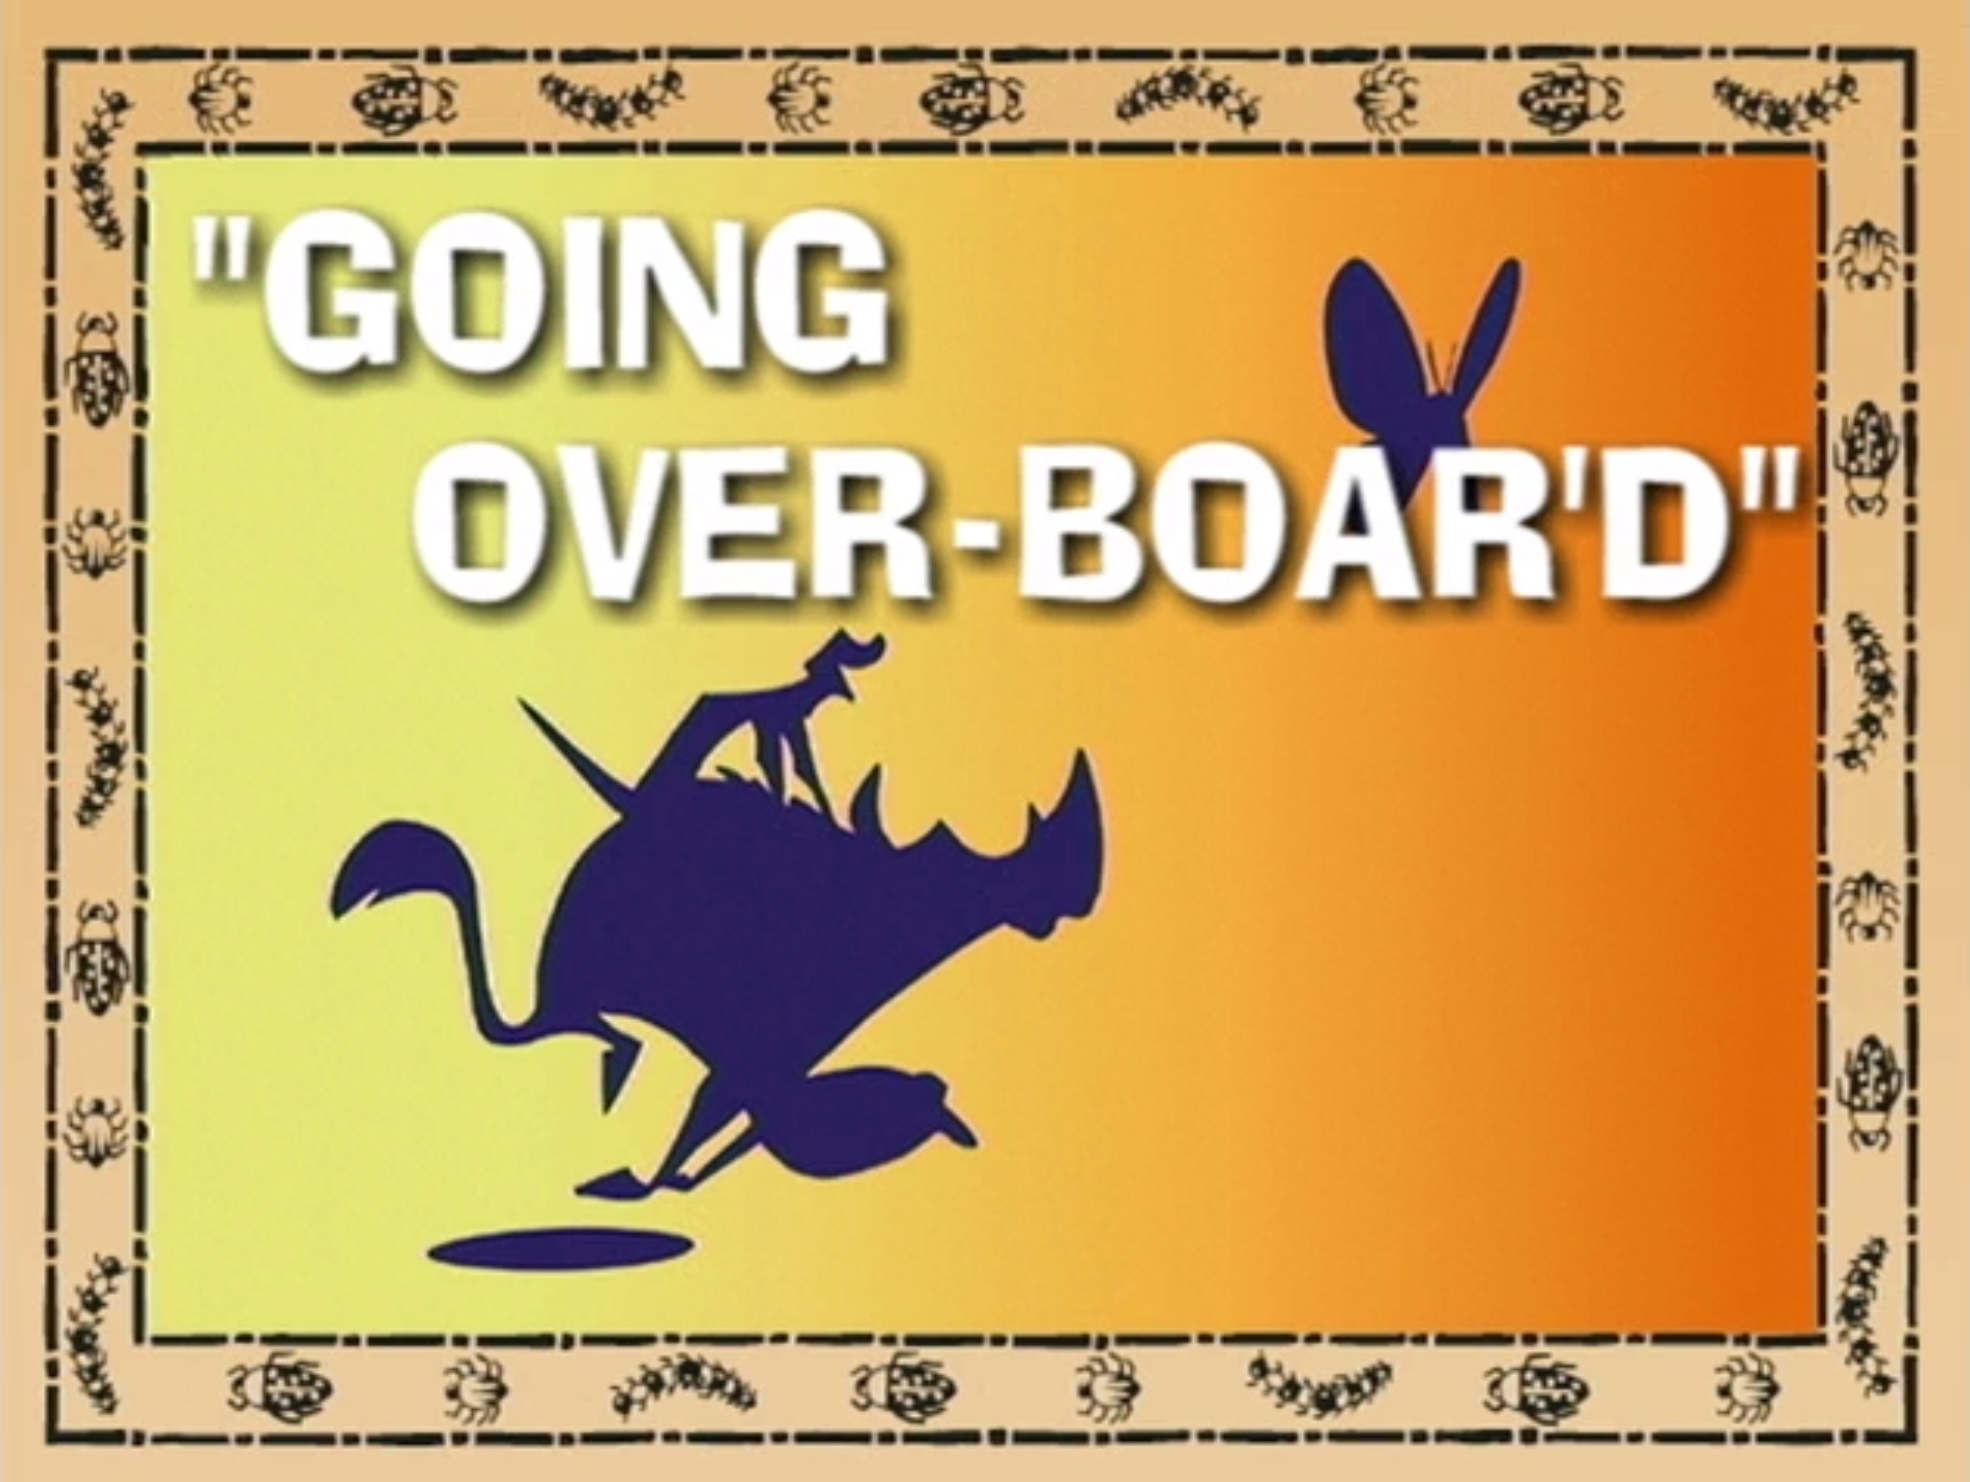 Going Over-Boar'd